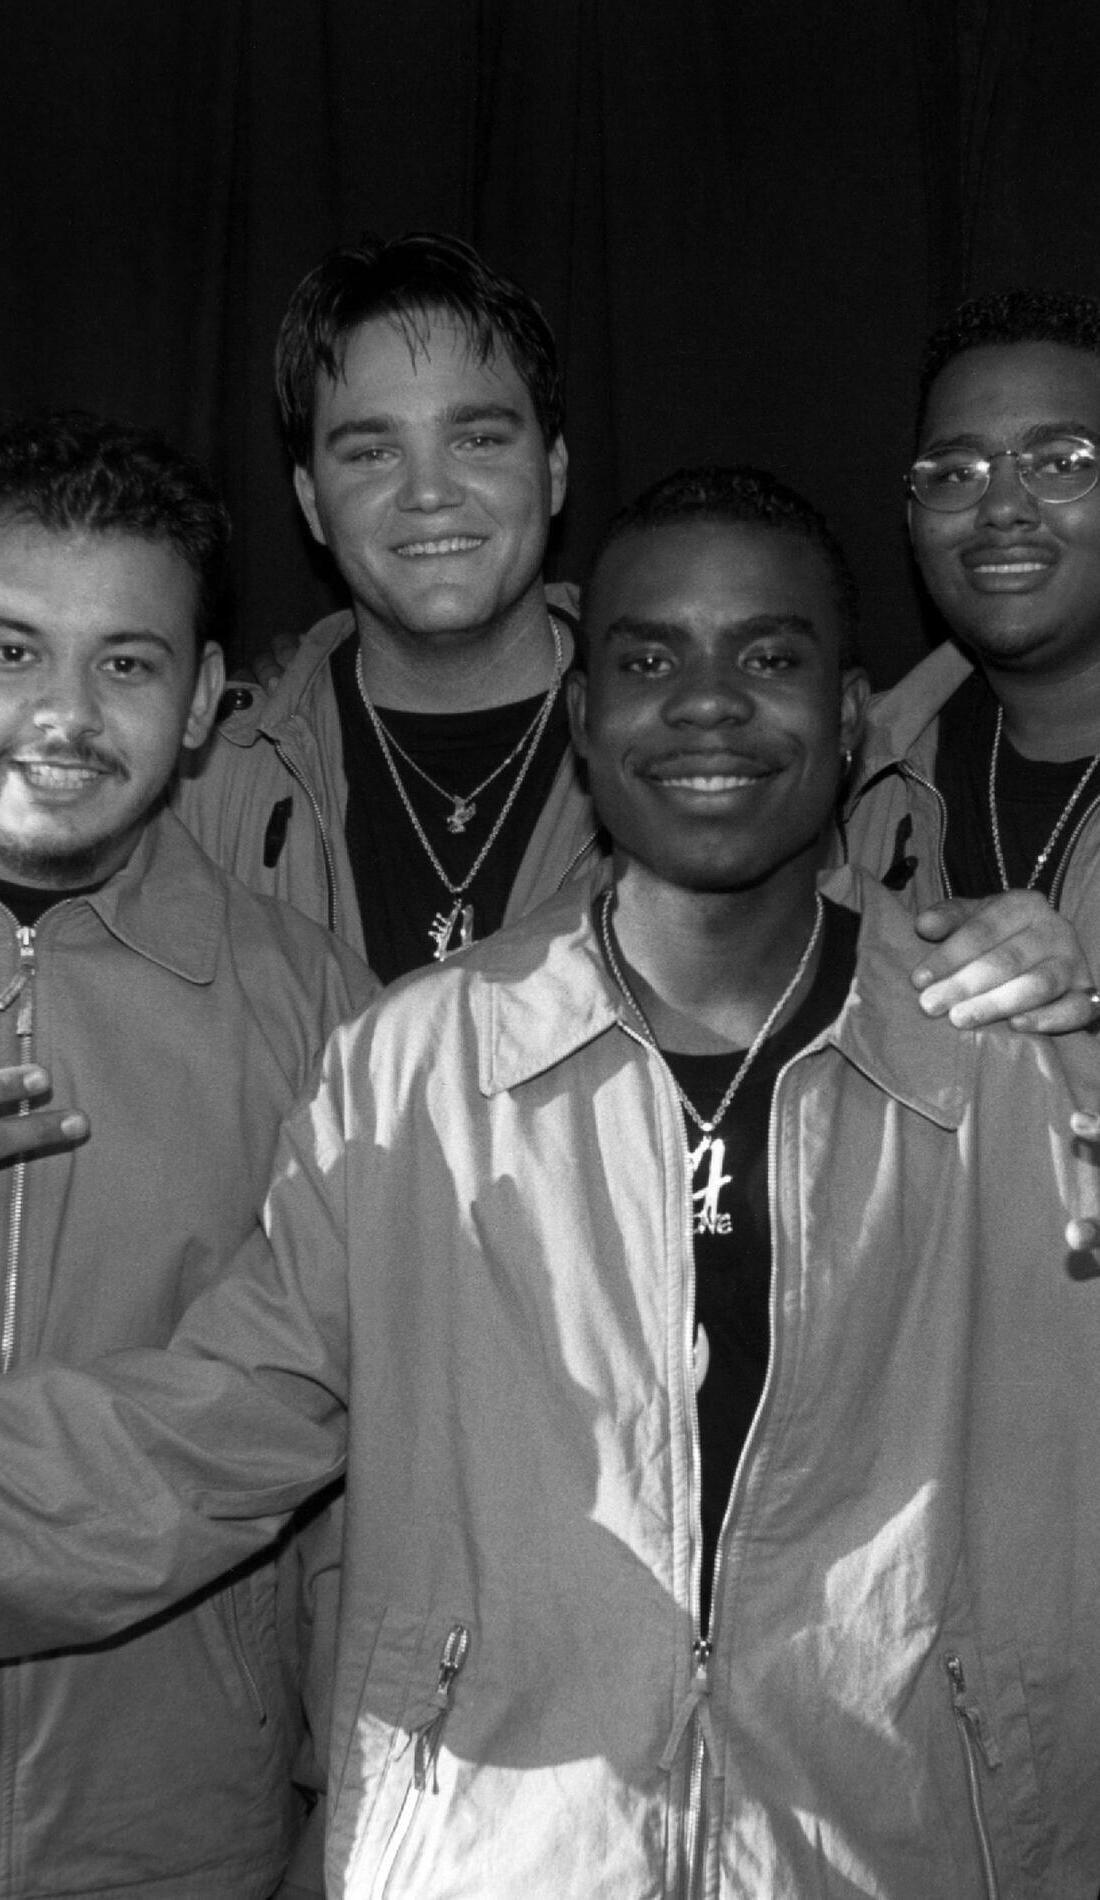 A All-4-One live event